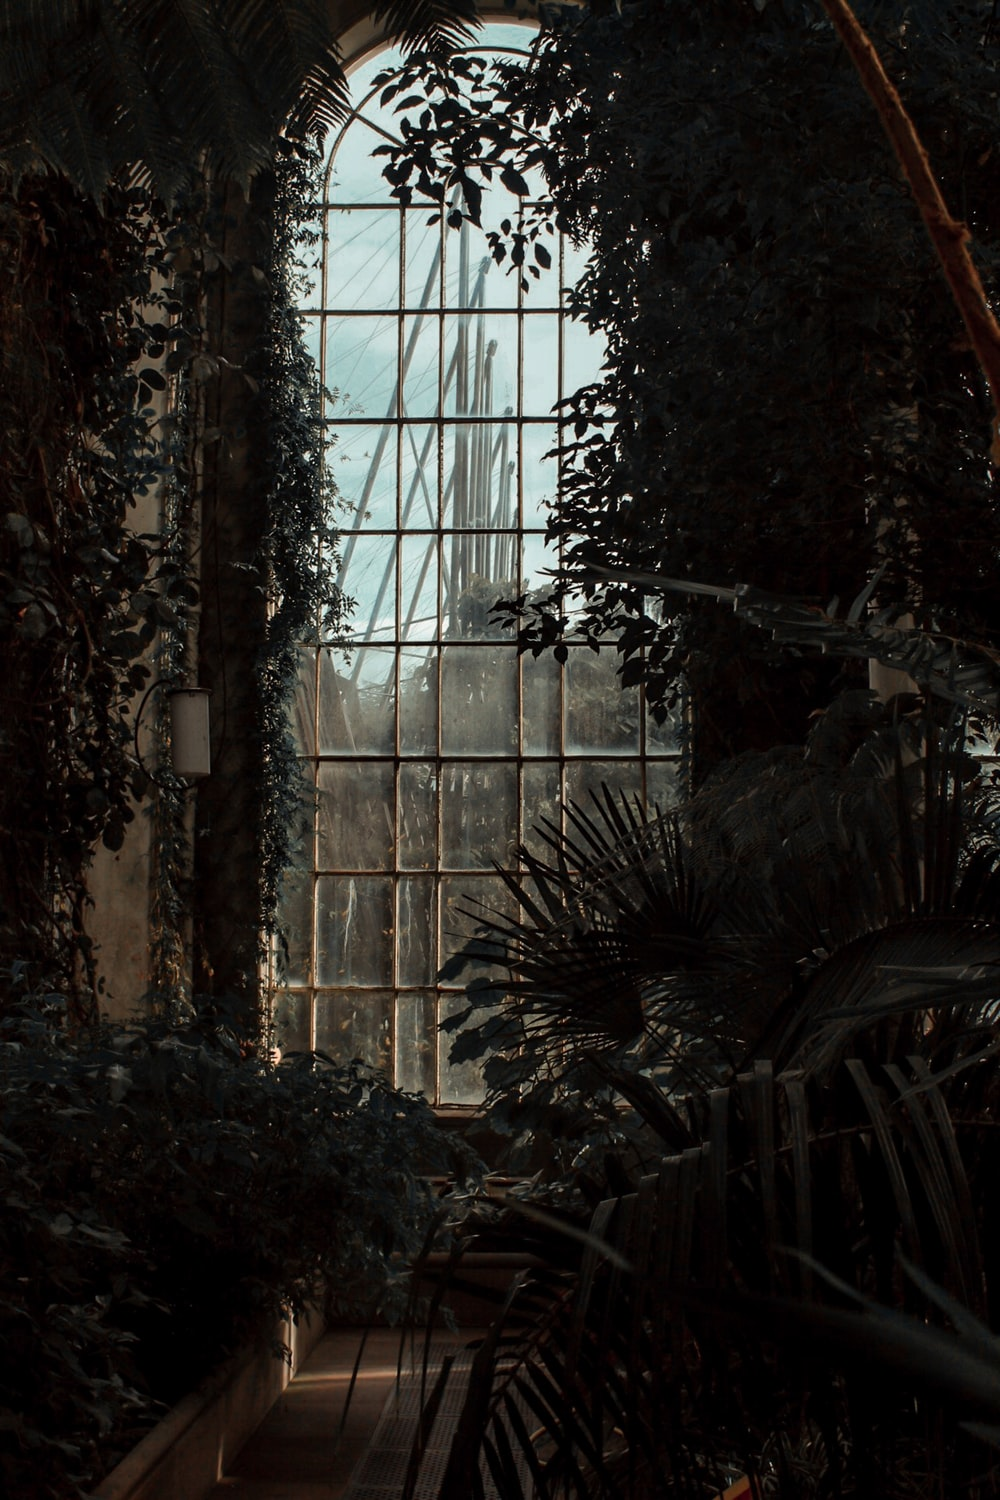 plants inside room with arch glass window